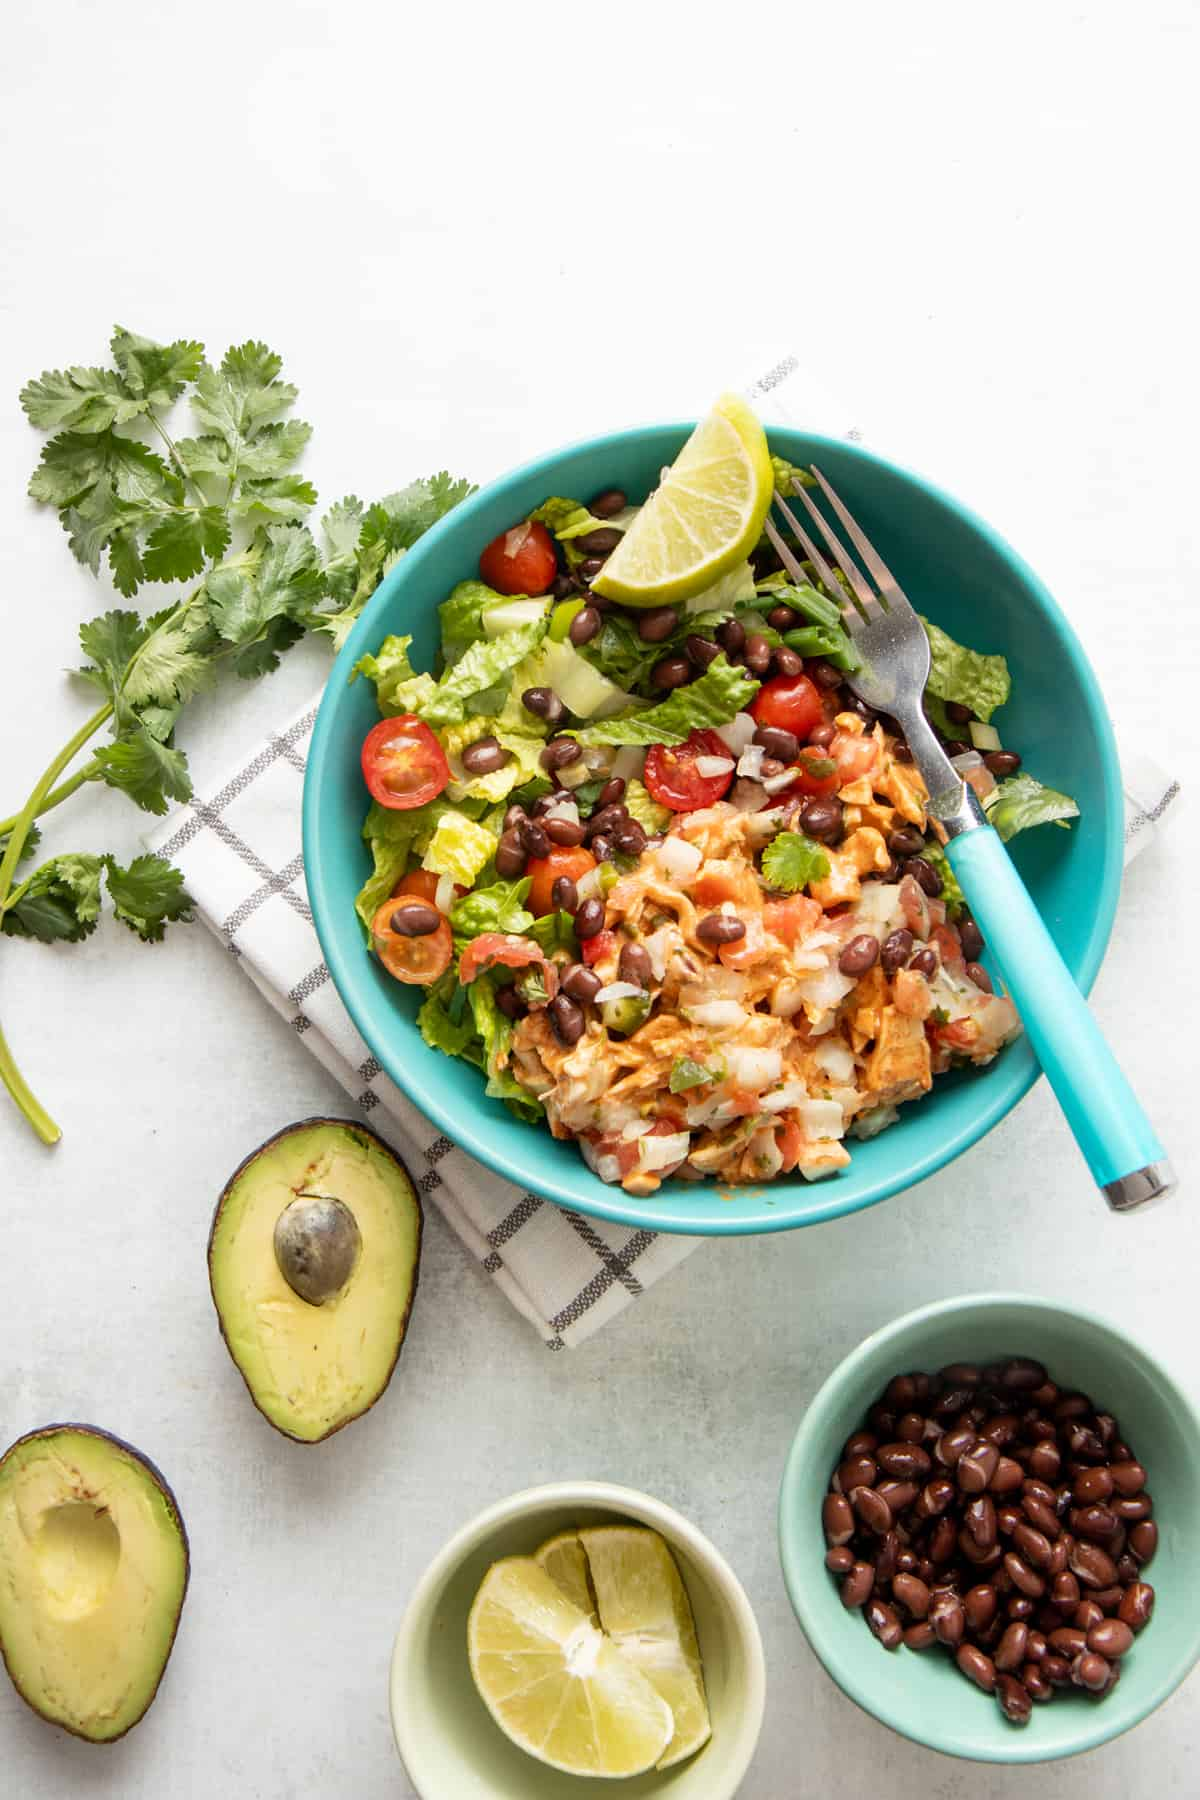 A teal bowl is filled with chicken taco salad. A lime wedge and a fork with an aqua handle rest in the bowl. A halved avpcado rests on a white countertop.